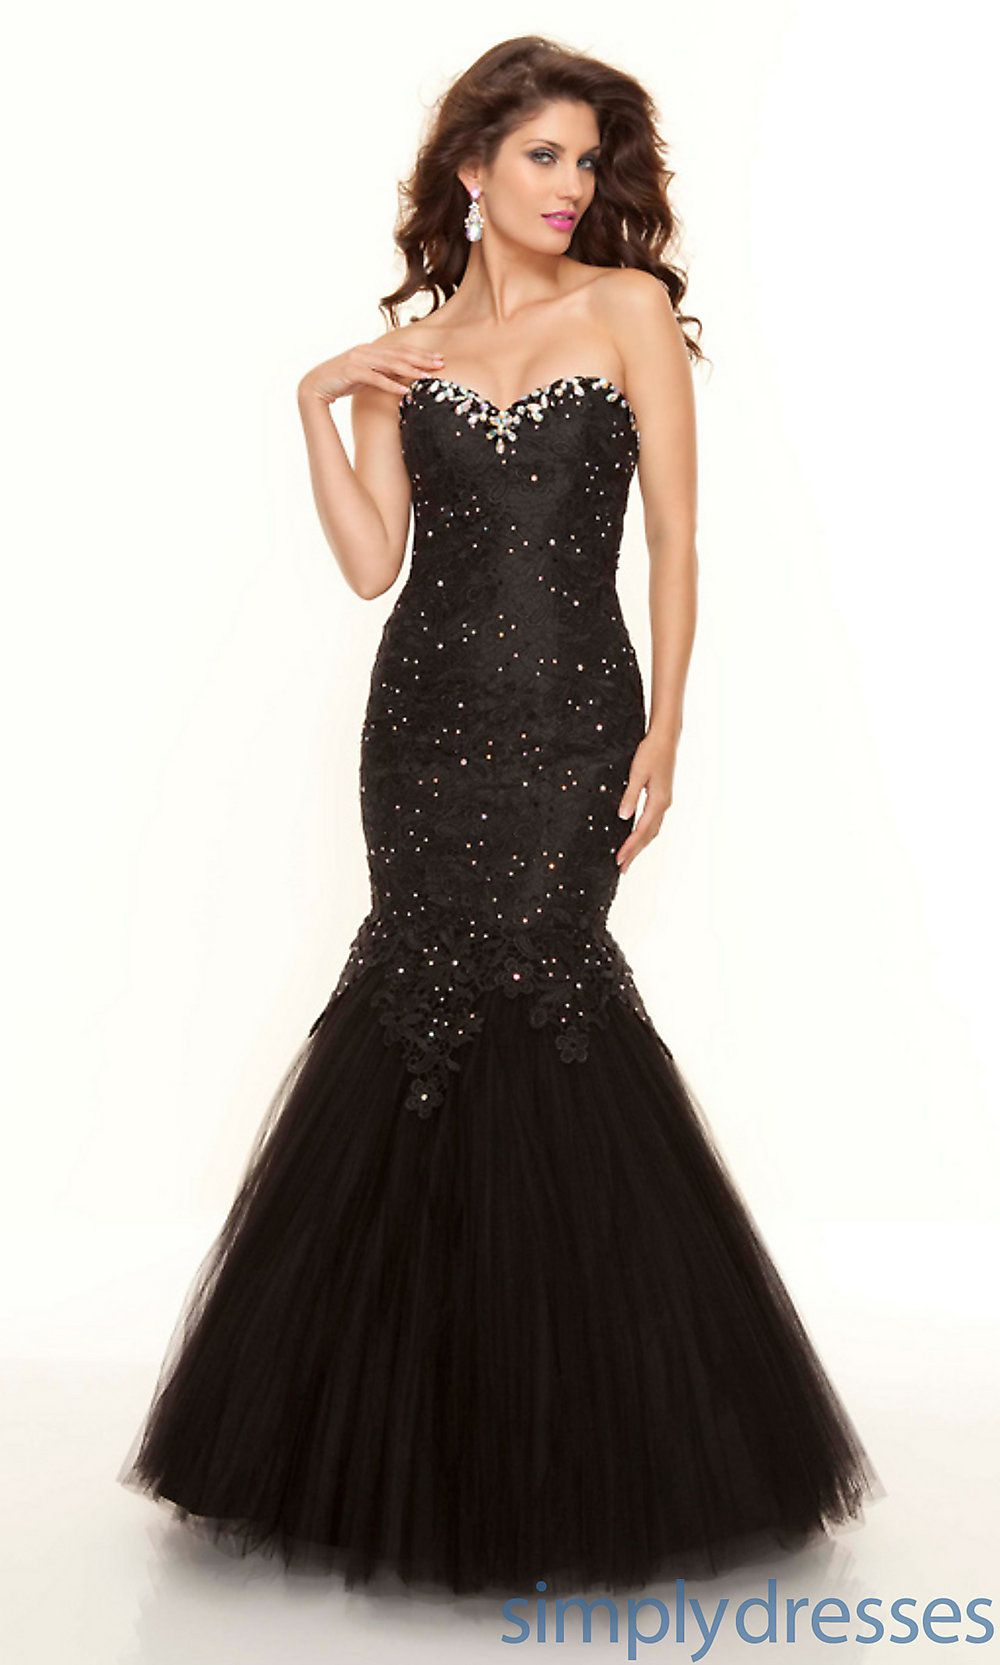 Strapless Black Lace Mermaid Dress ML-93065 | Red Carpet Ready ...